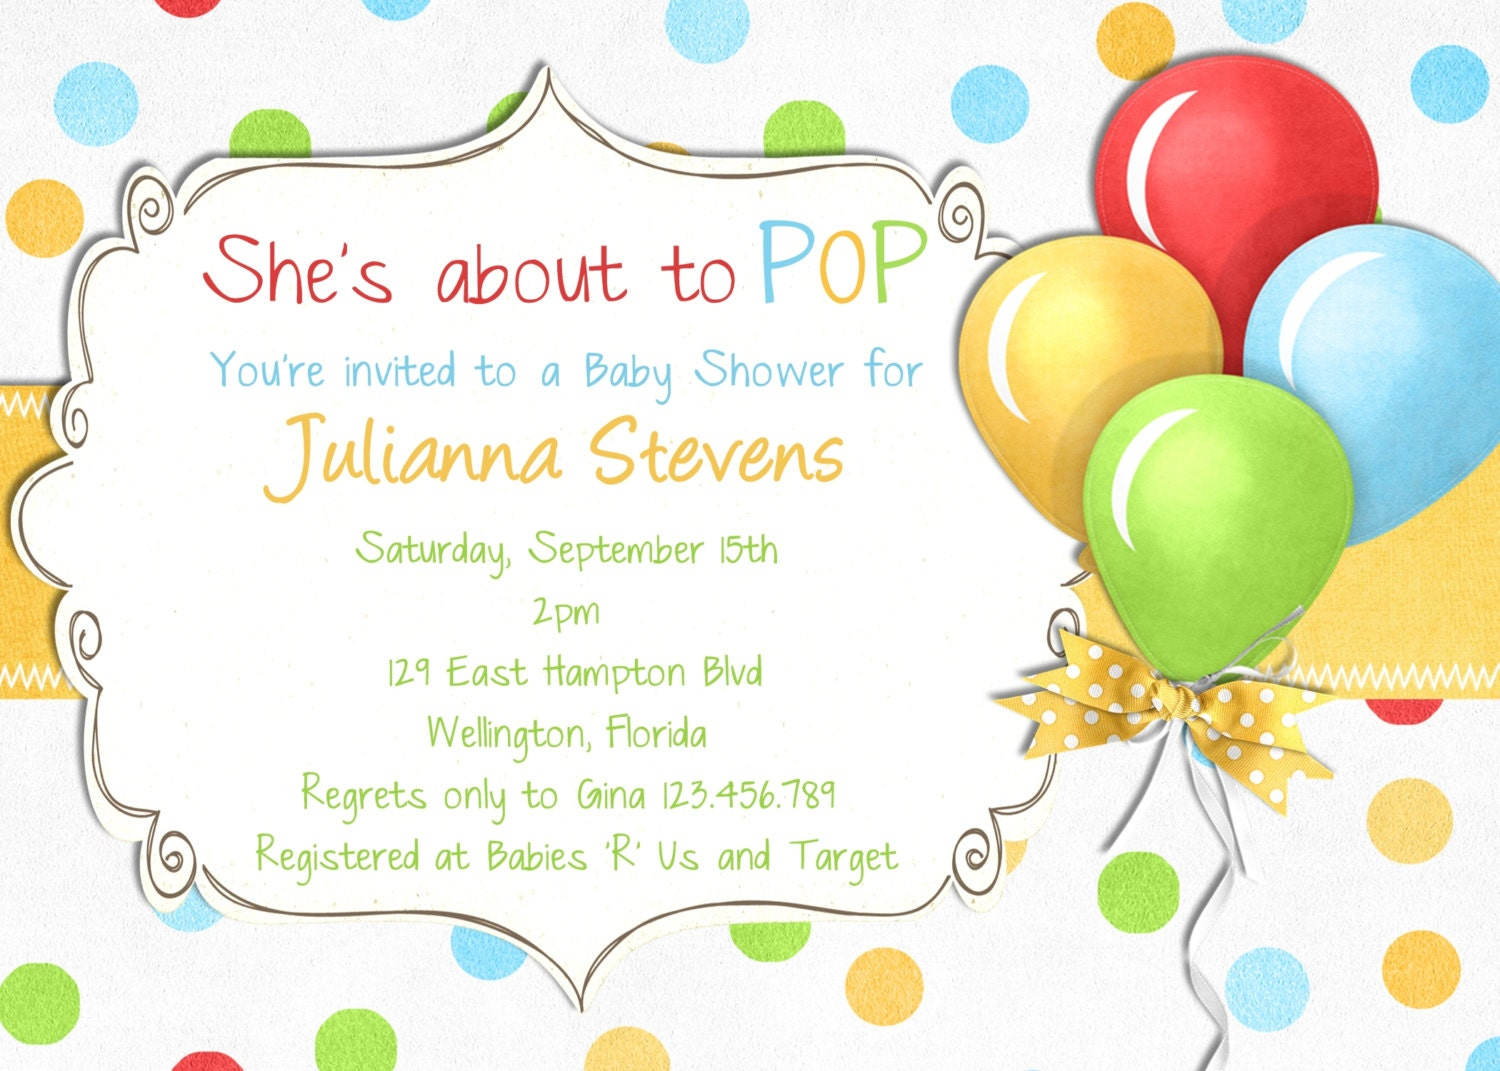 She's About to Pop Baby Shower Invitation Gender by 3PeasPrints